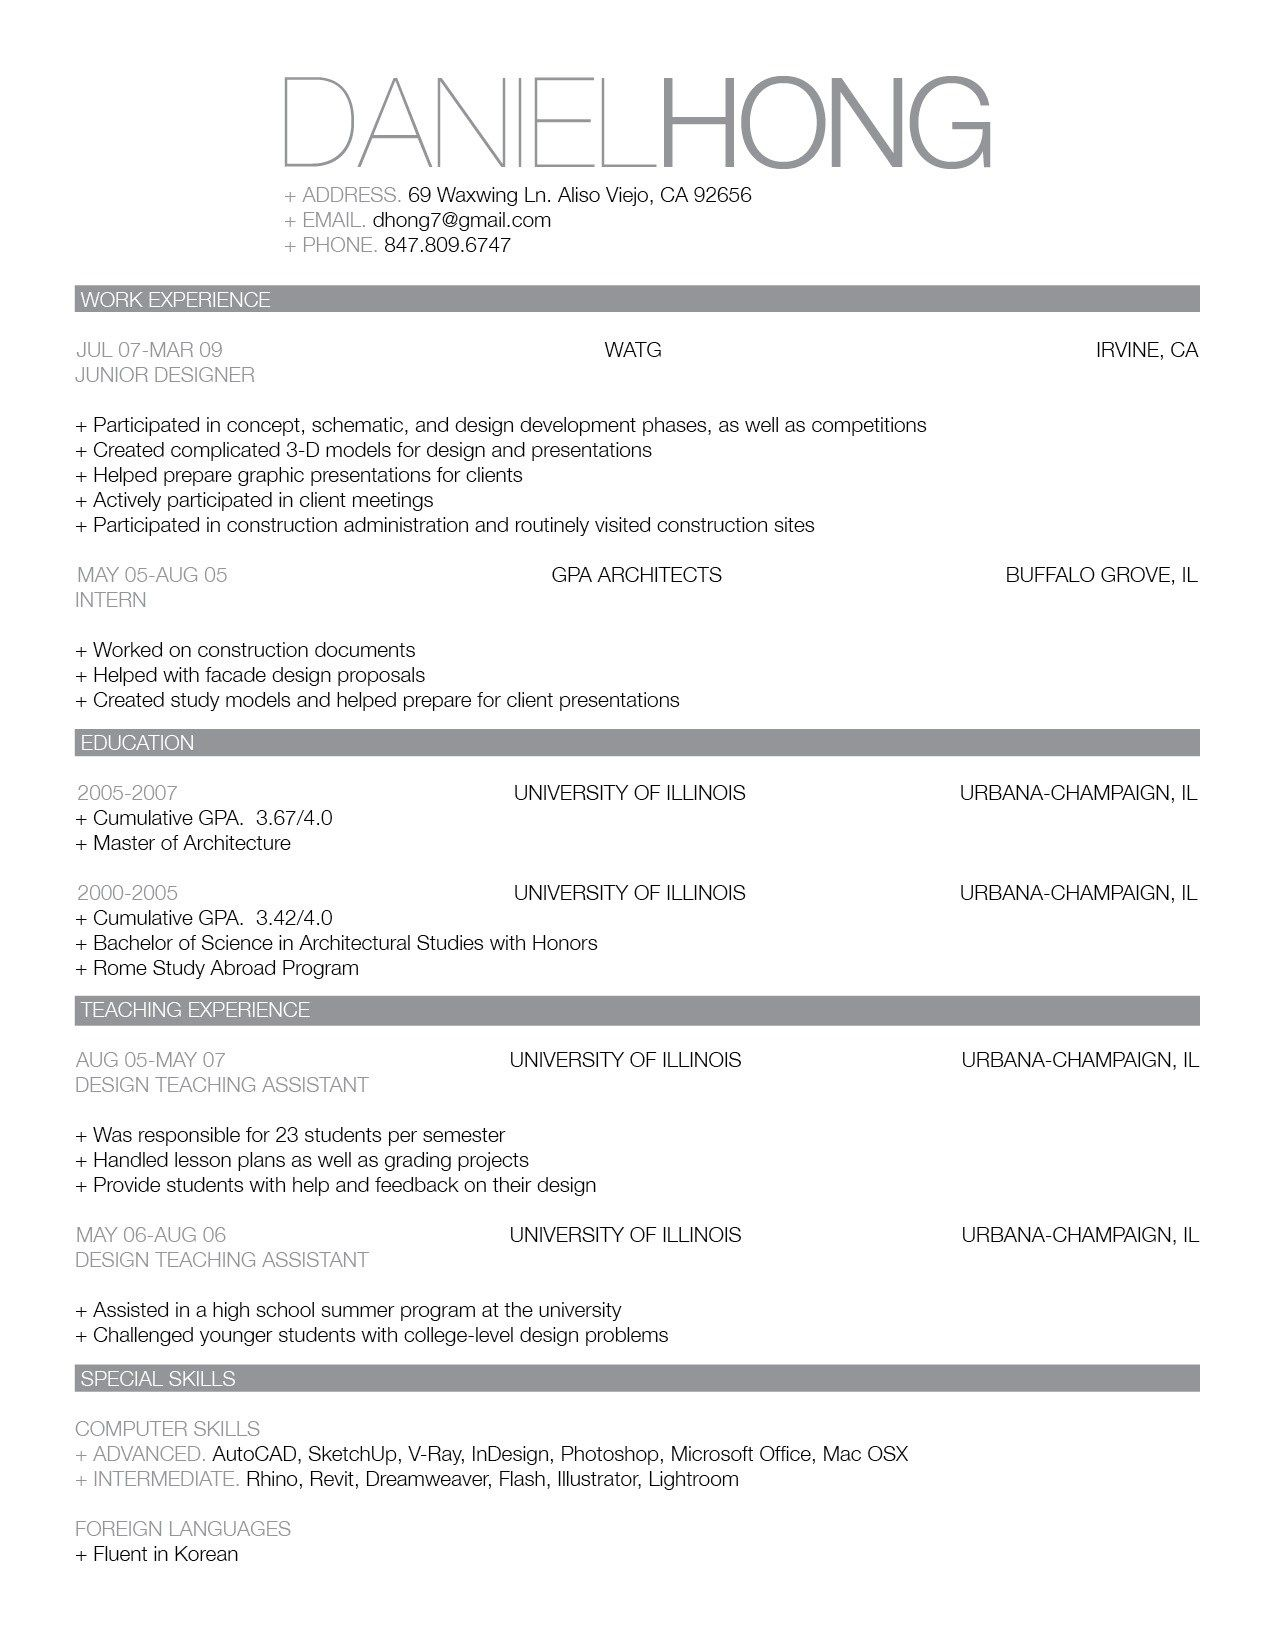 Teacher Aide Resume Examples Cover Letter Home Health Experiencedl